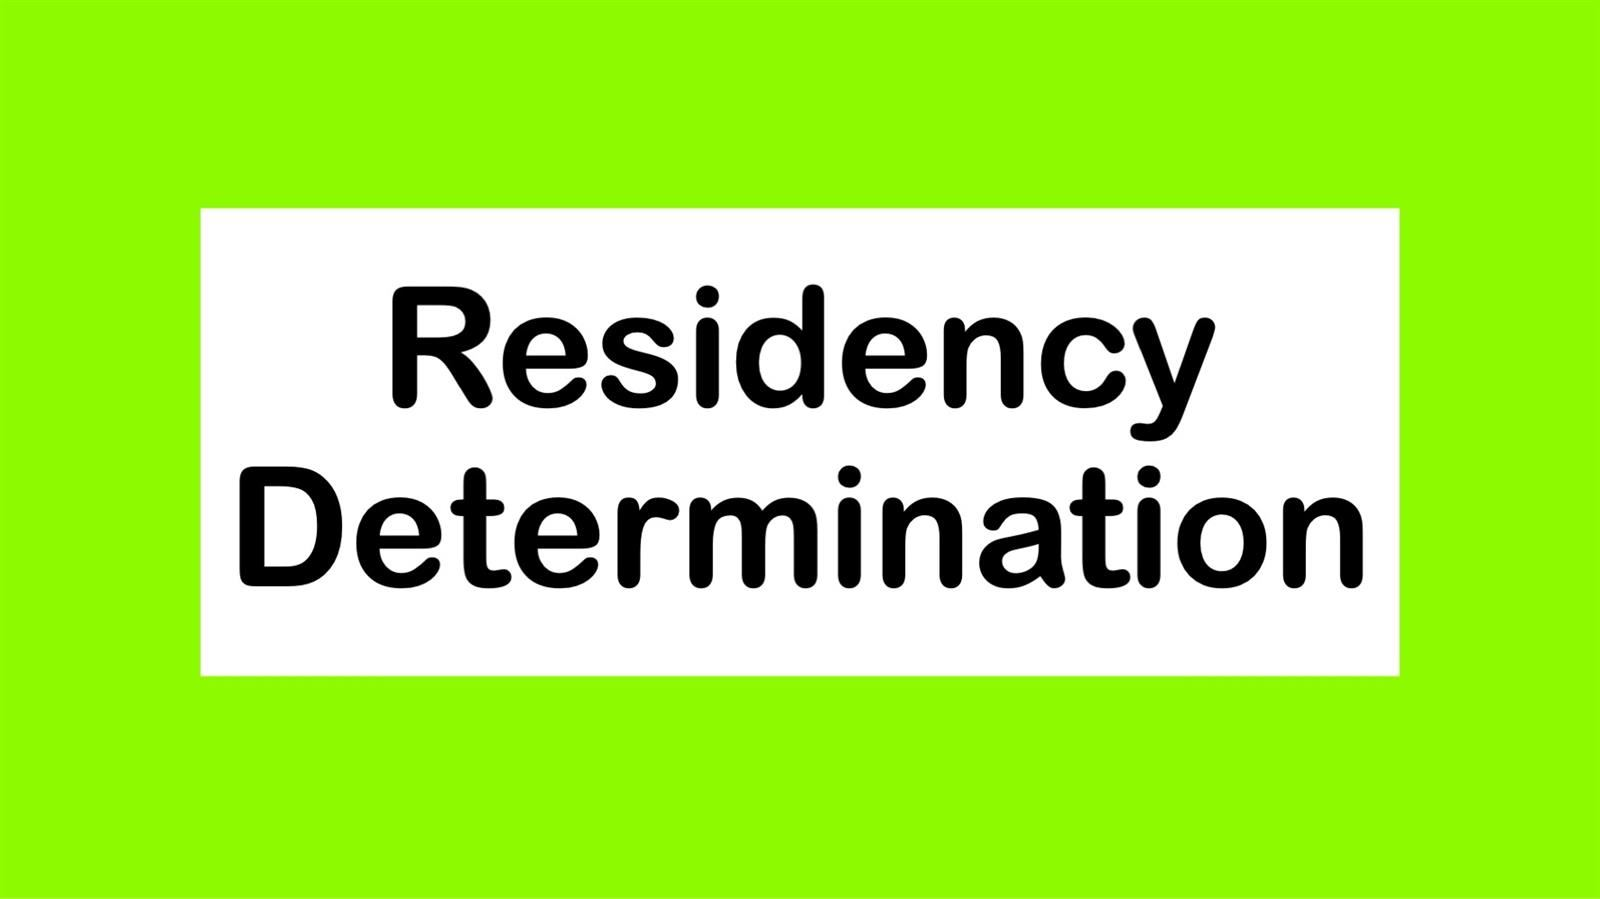 Residency Determination Services (RDS)